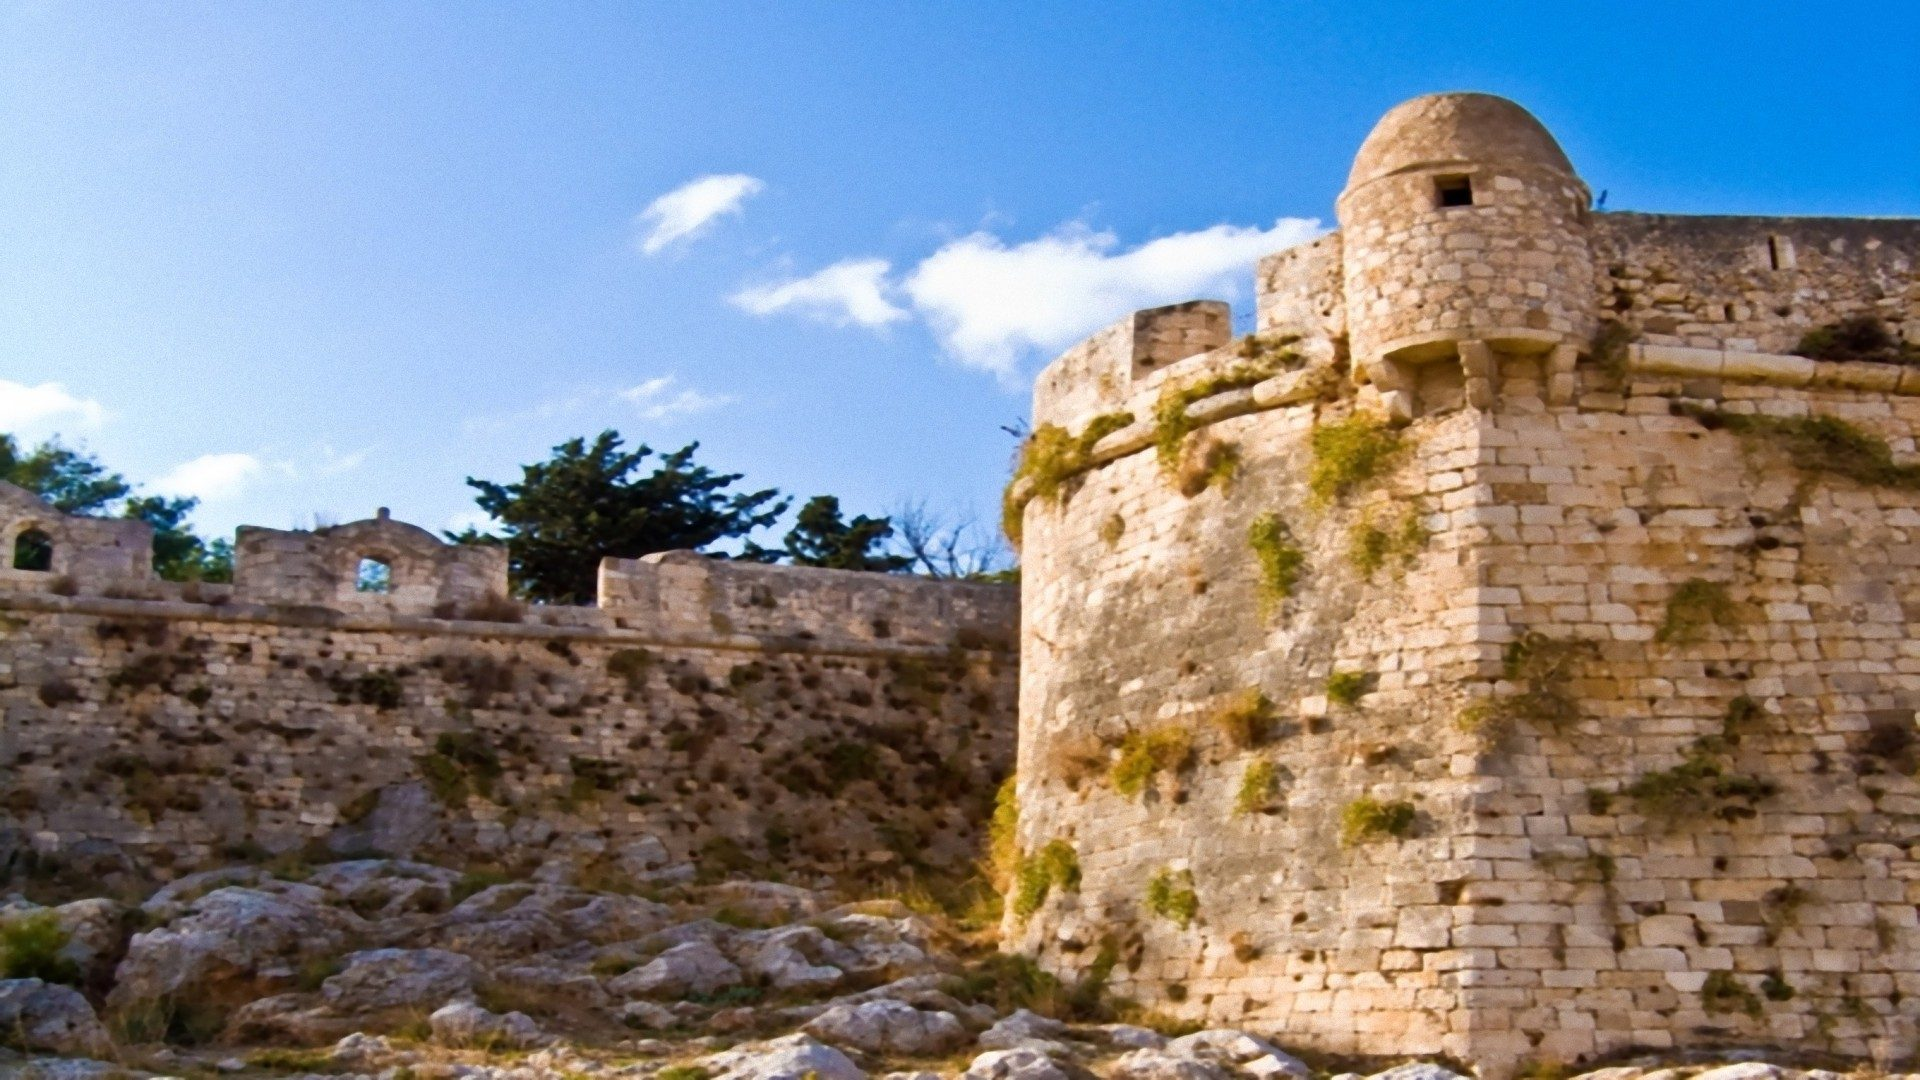 The Fortezza is the citadel of the city of Rethymno in Crete, Greece